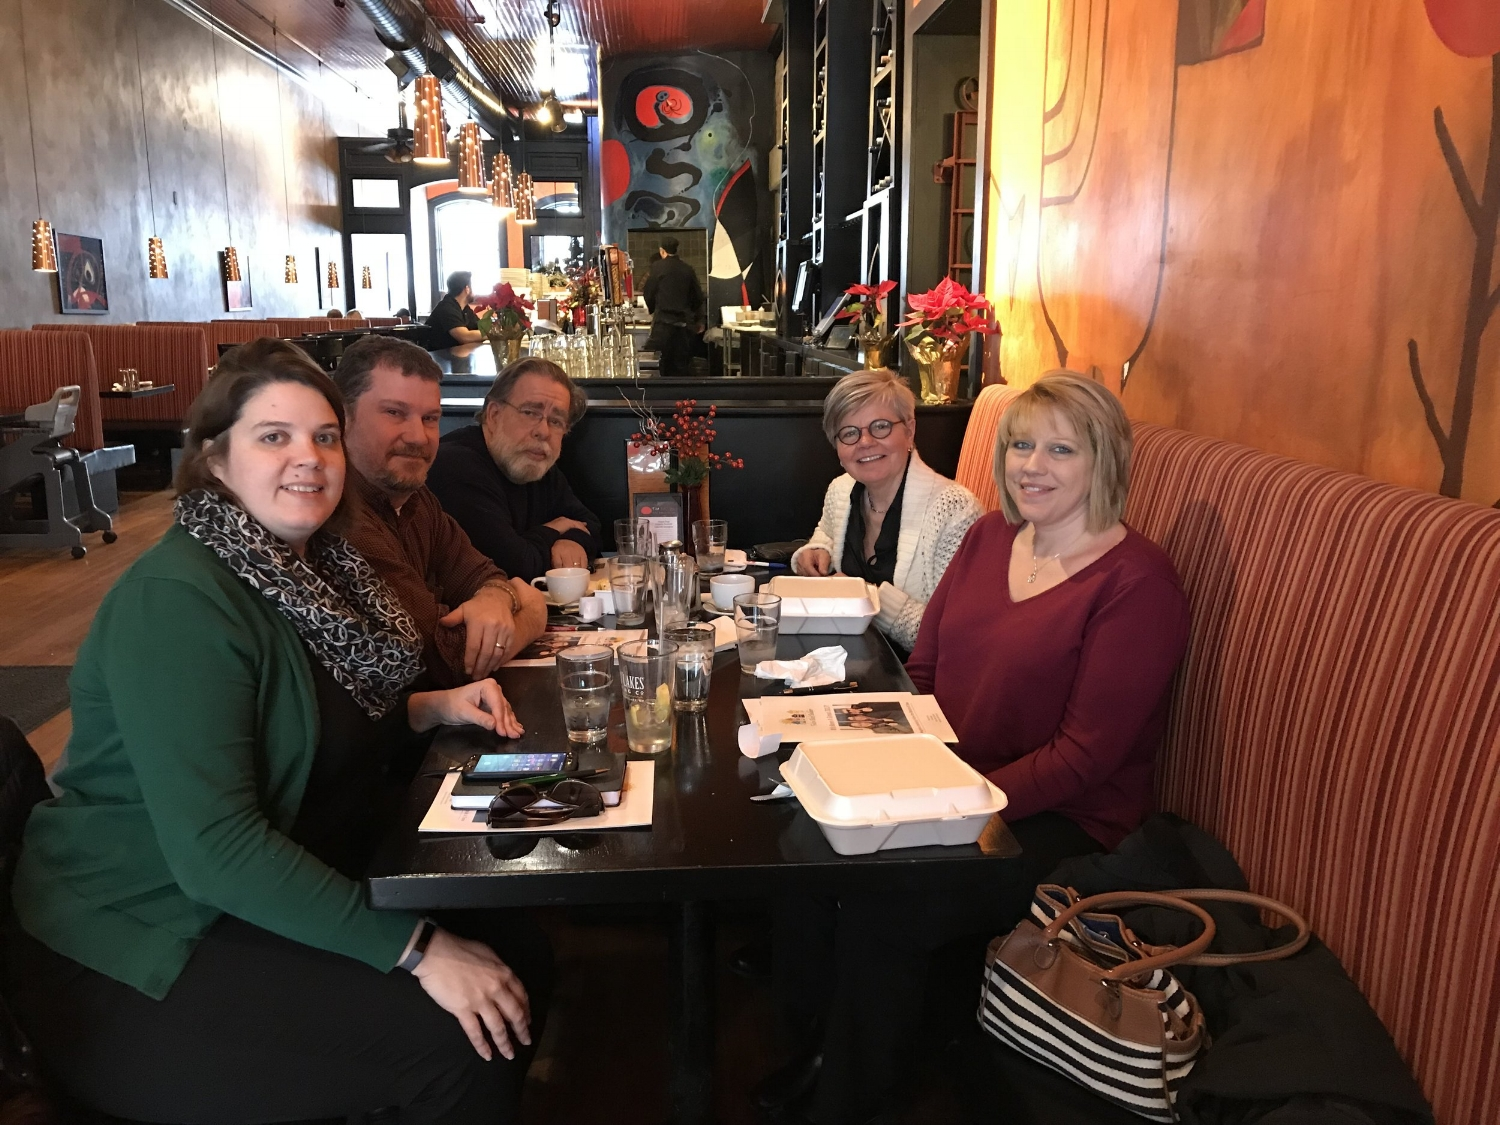 The Oswego Renaissance founders Paul Stewart and Steve Phillips share advice and wisdom with Linda Eagan, Alissa Viscome and Karen Perwitz from Fulton Block Builders